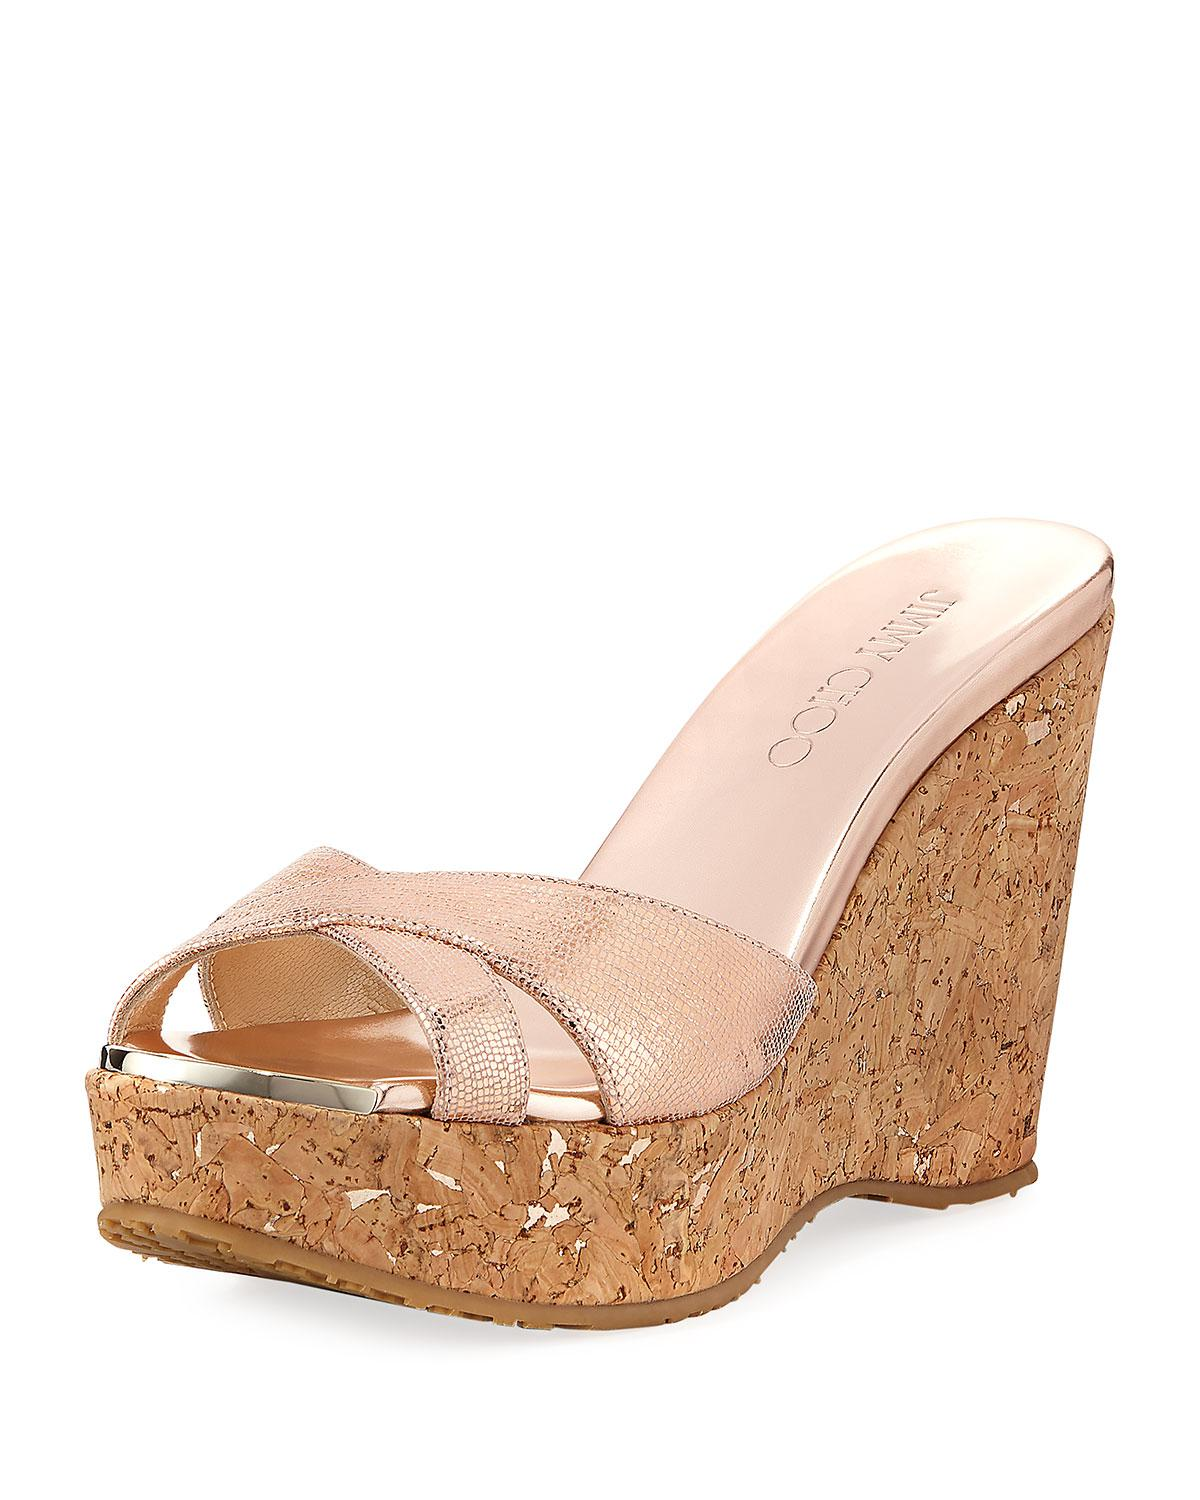 Jimmy Choo Metallic Platform Wedges store cheap price manchester great sale cheap outlet store rtlOt